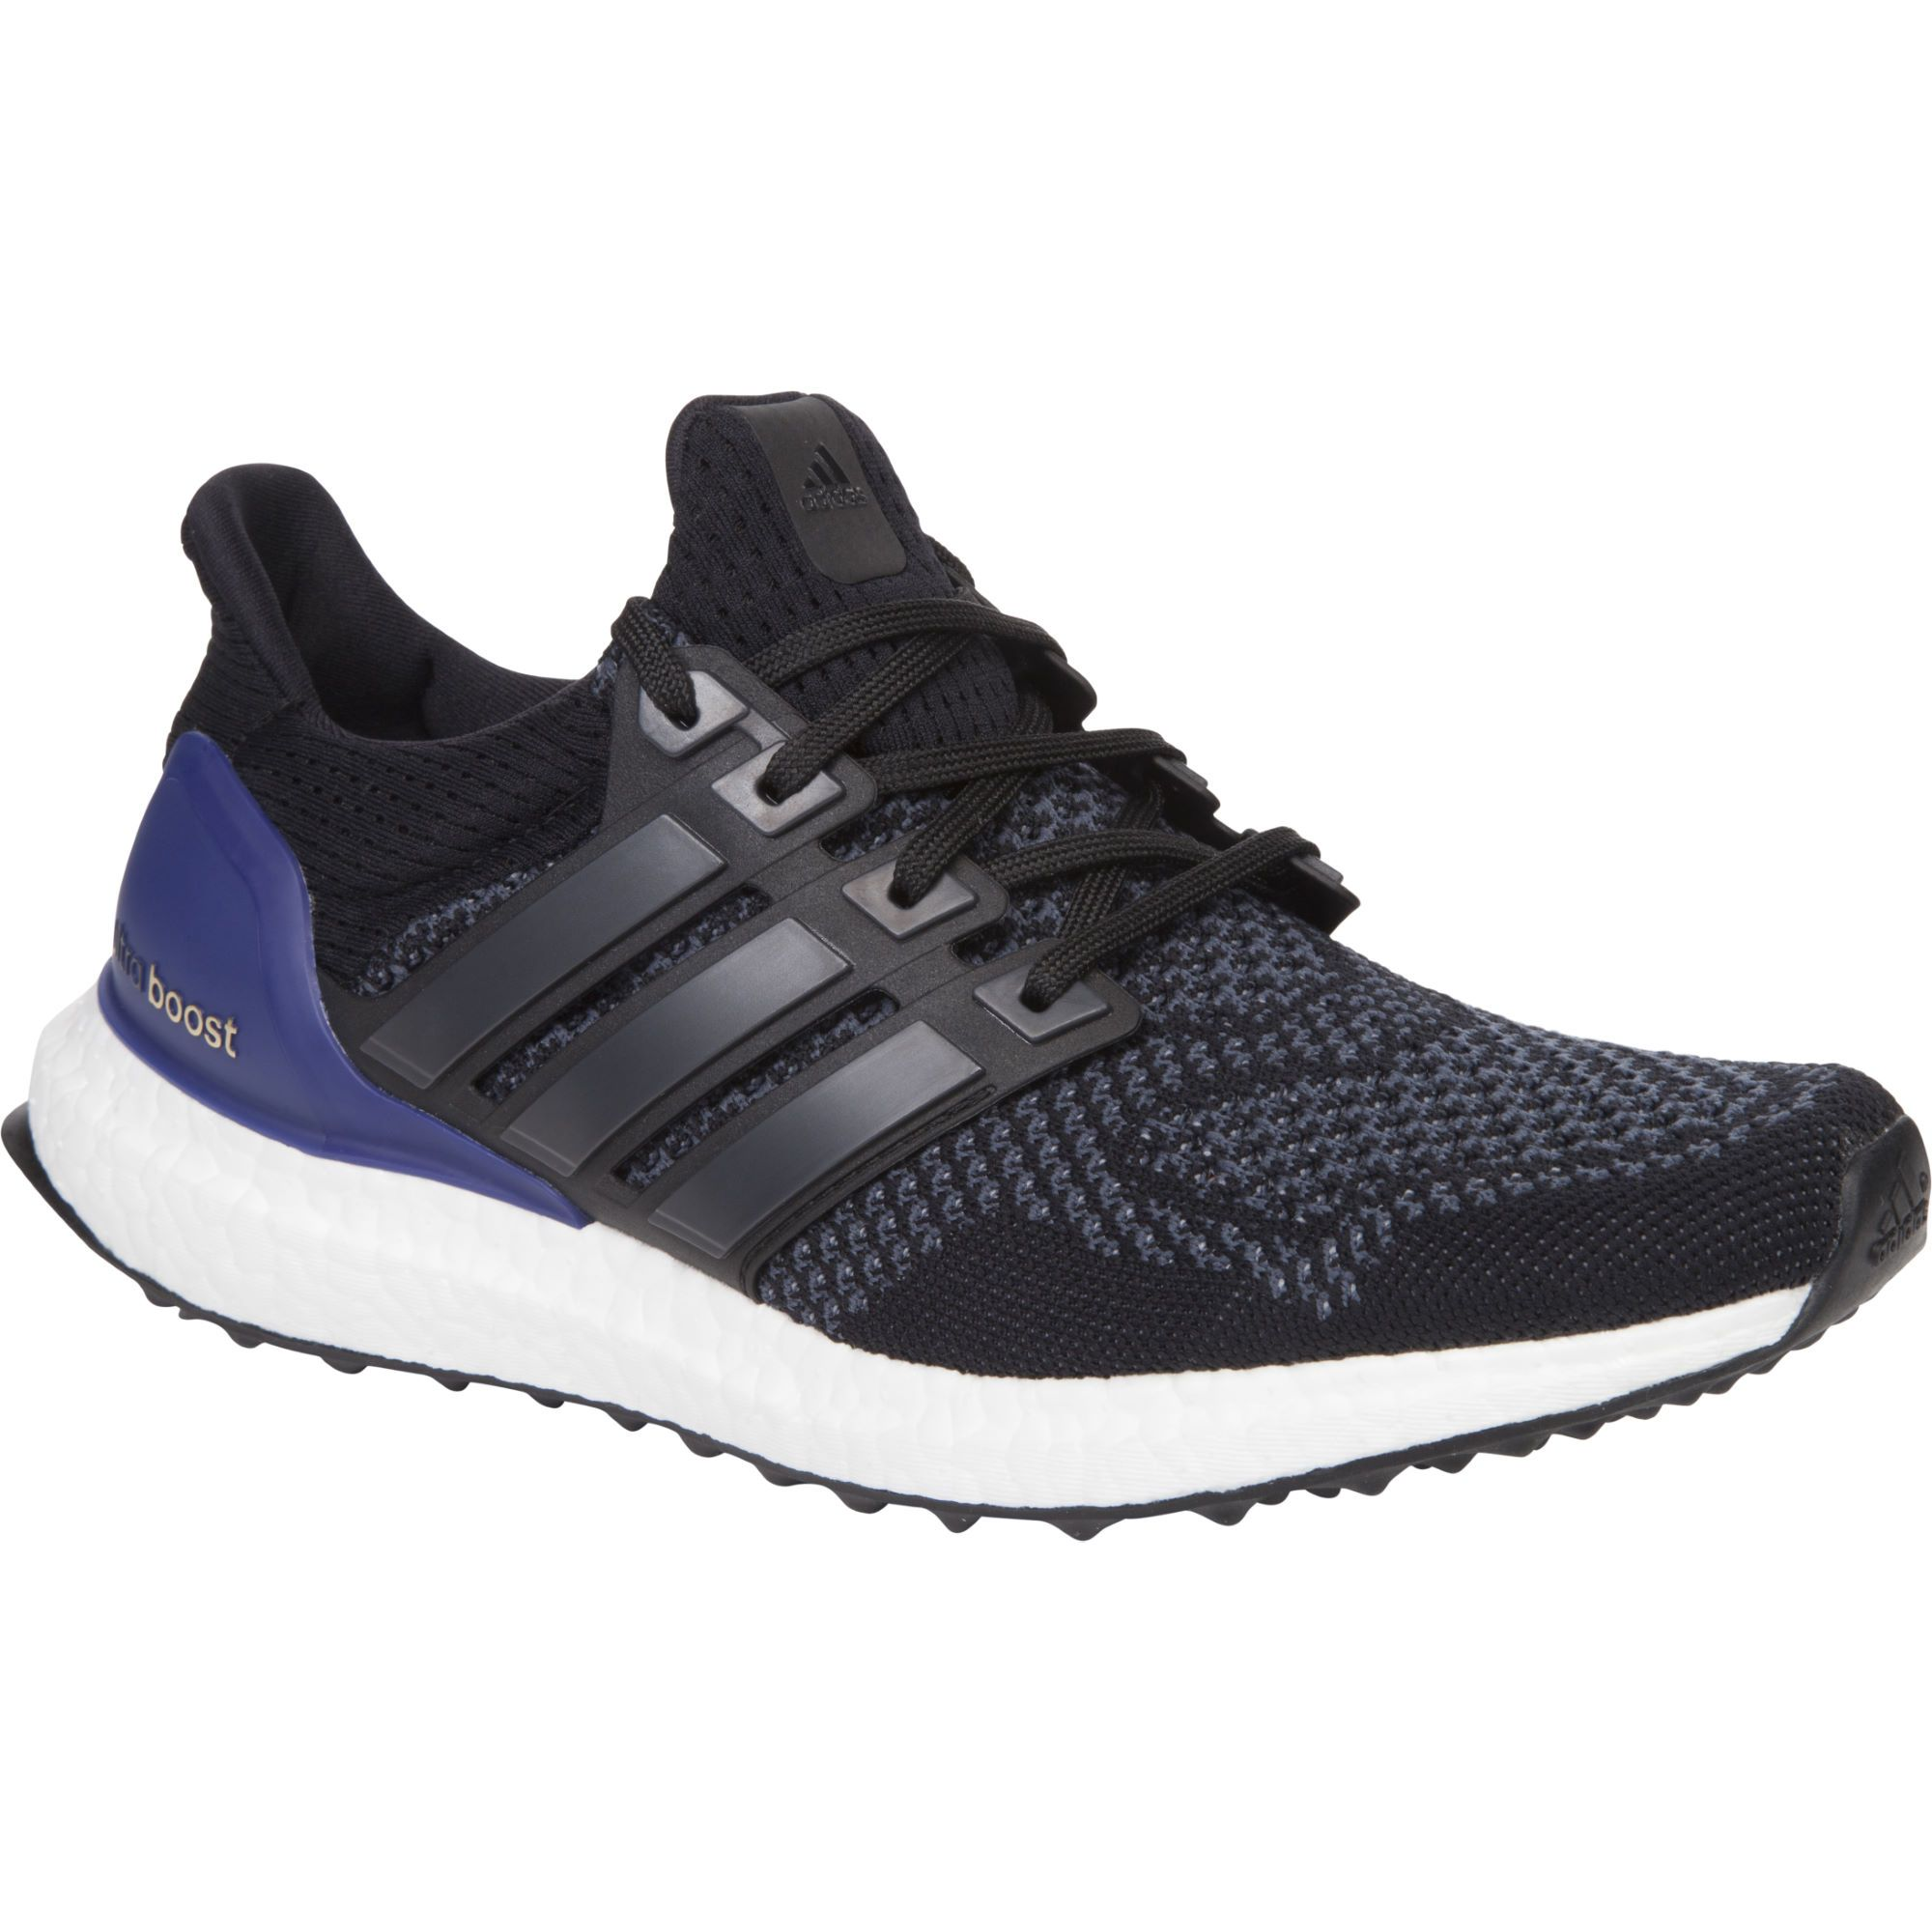 Wiggle | Adidas Ultra Boost Shoes - SS15 | Cushion Running Shoes